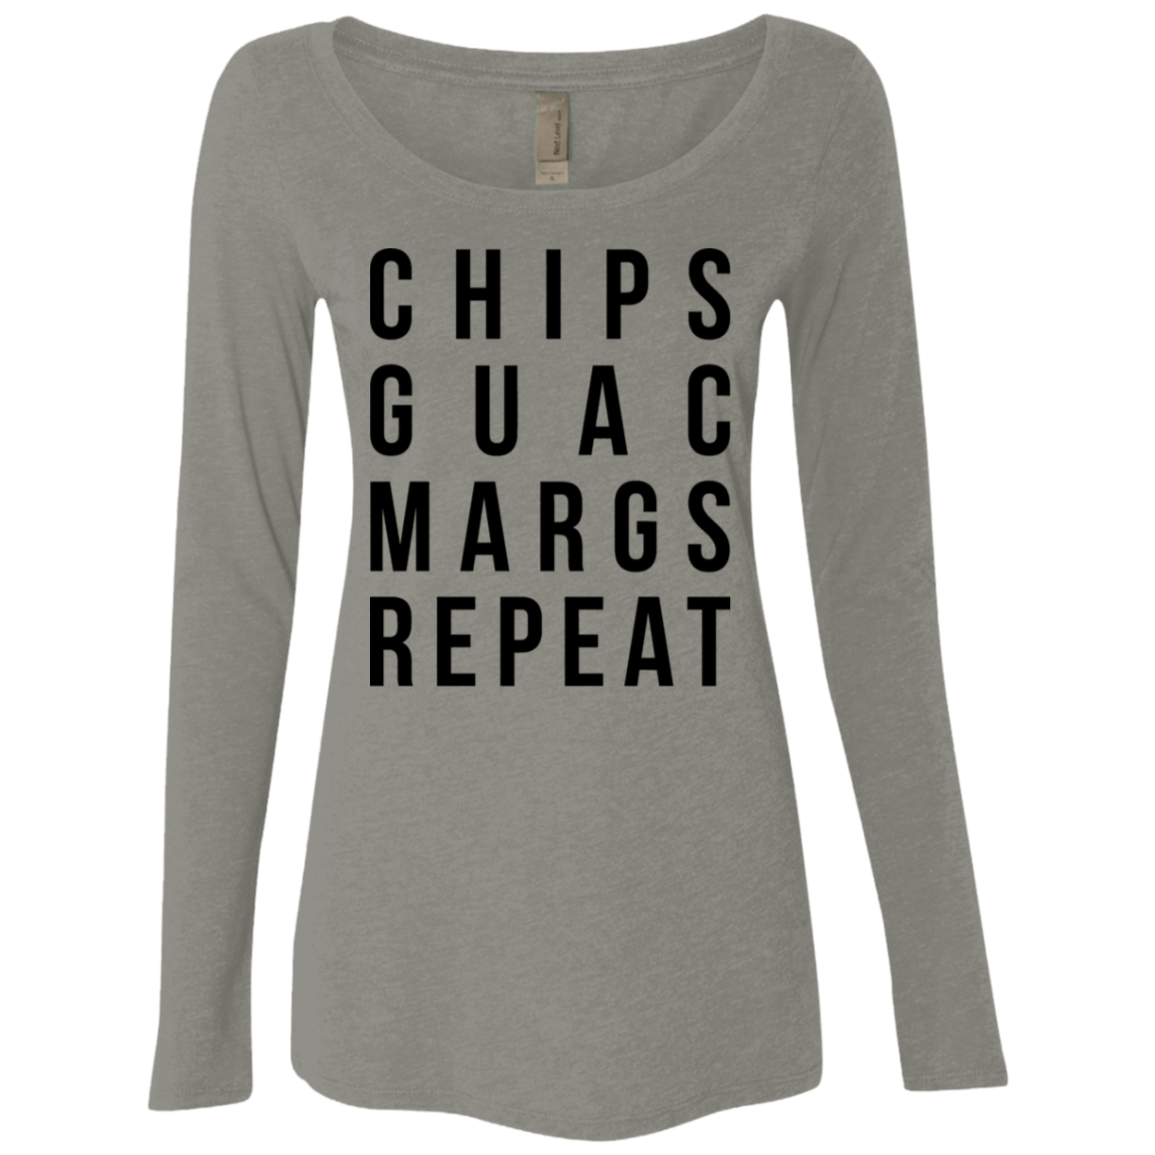 Chips Guac Margs Repeat Women's Long Sleeve Tee - Trendy Tees